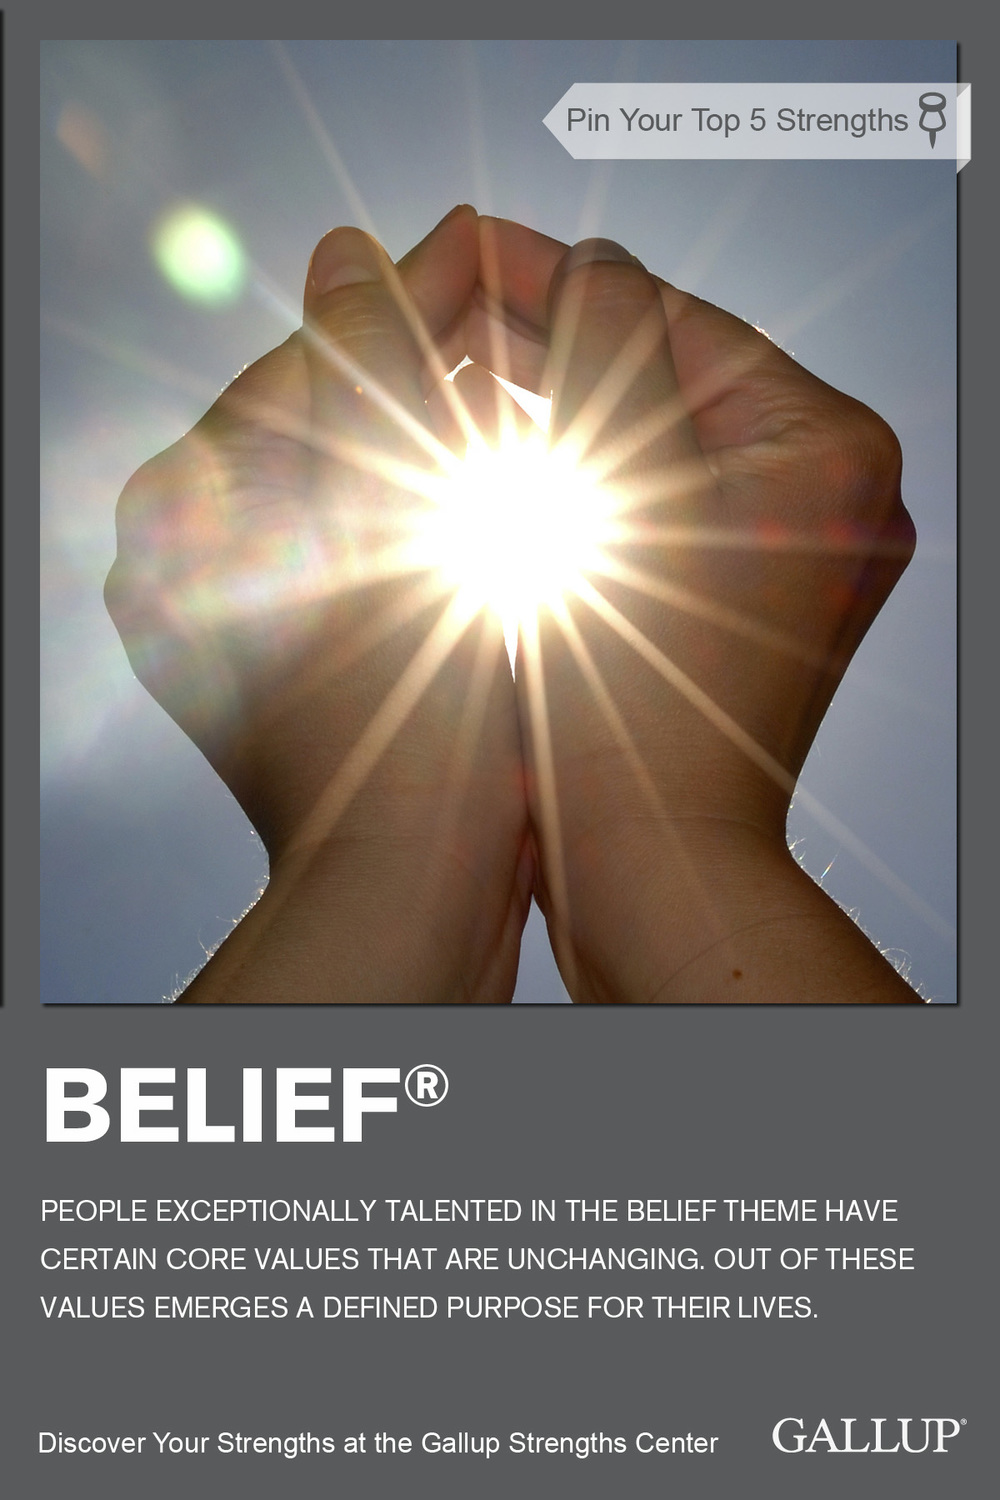 Belief Strengths School StrengthsFinder Singapore.jpg